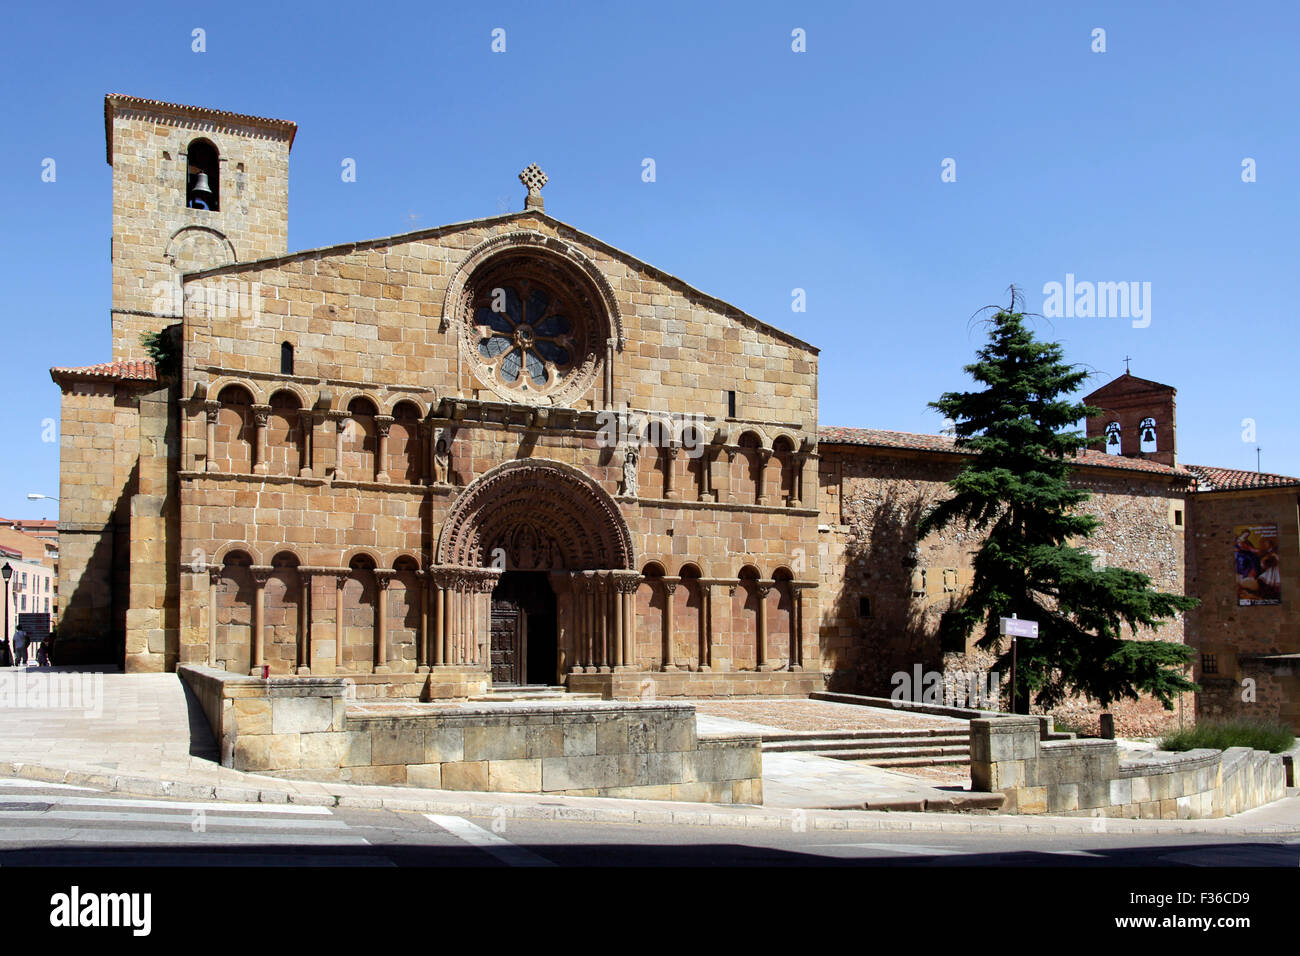 Domingo Soria Stock Photos Domingo Soria Stock Images Alamy